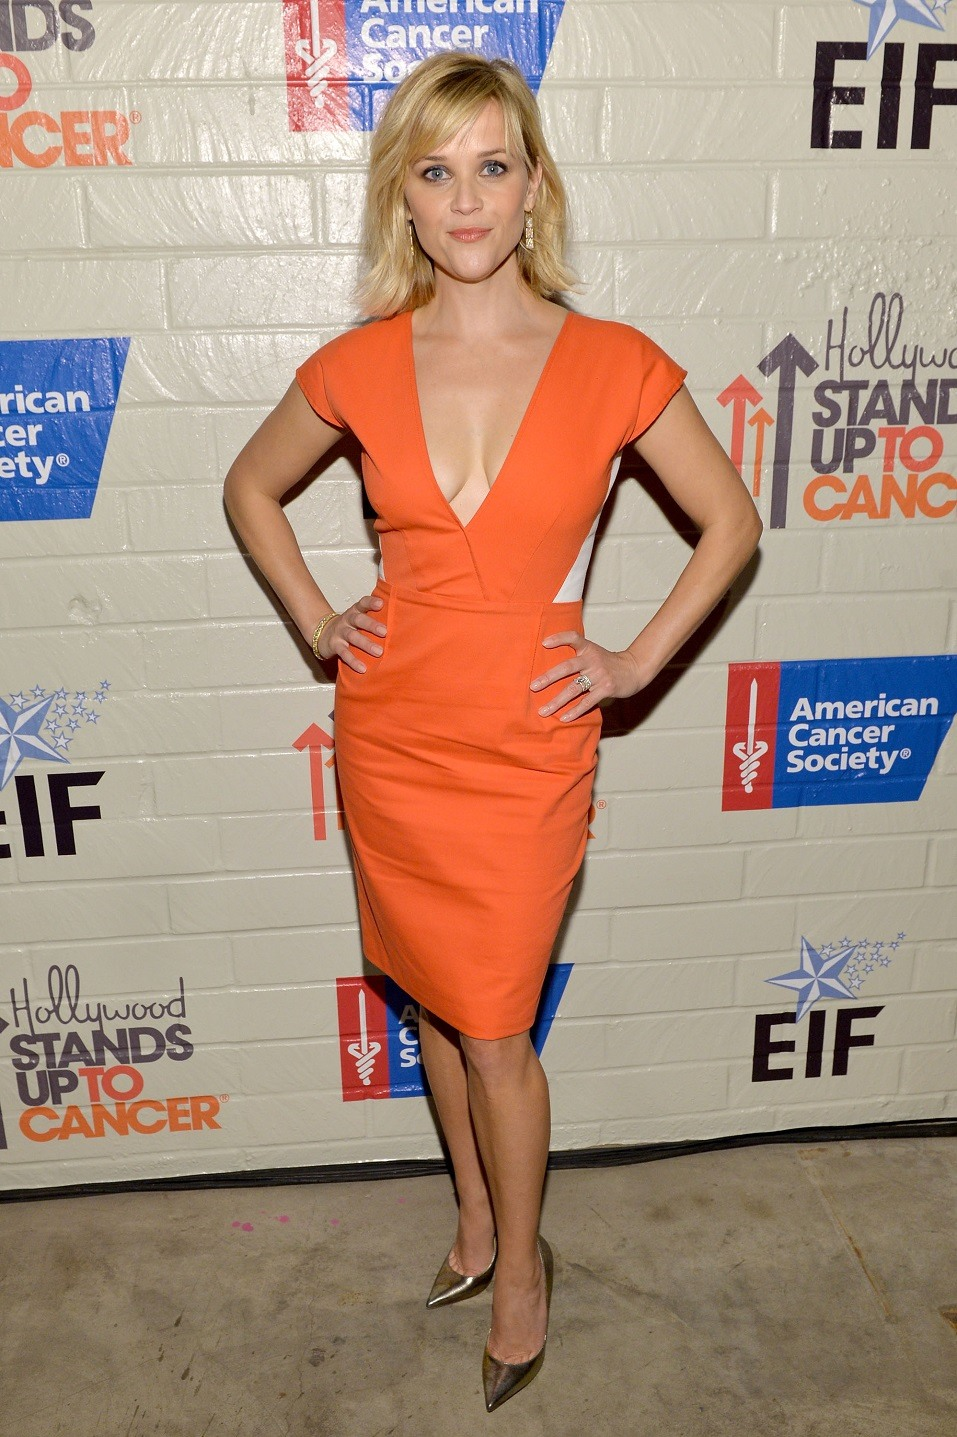 Host Reese Witherspoon attends Hollywood Stands Up To Cancer Event